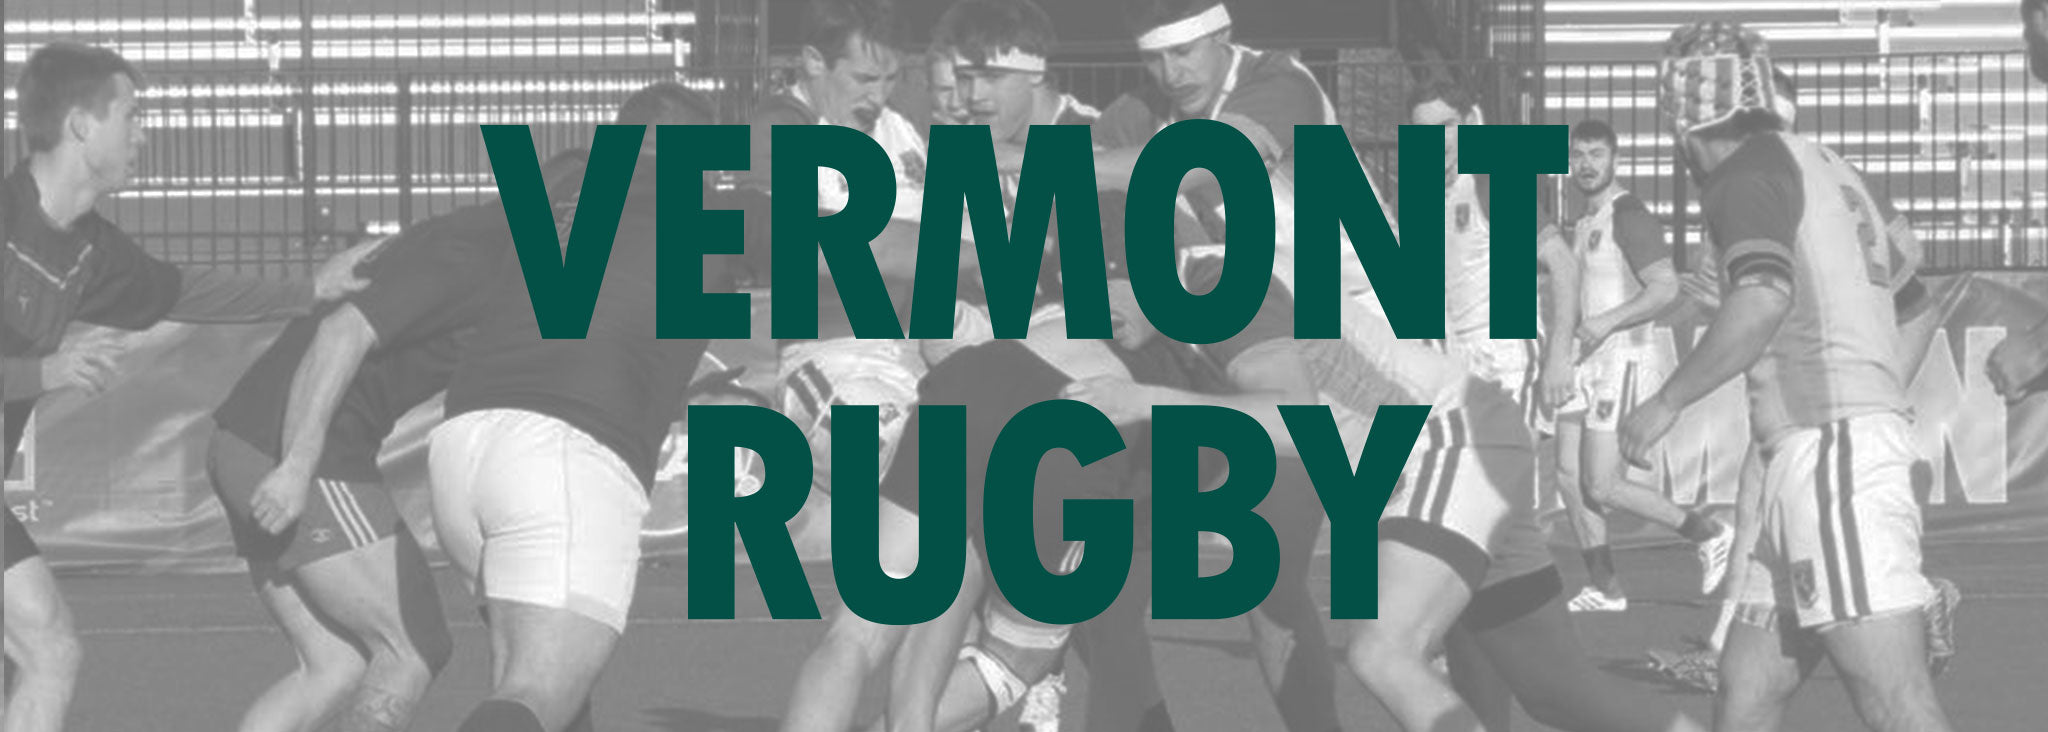 University of Vermont Rugby